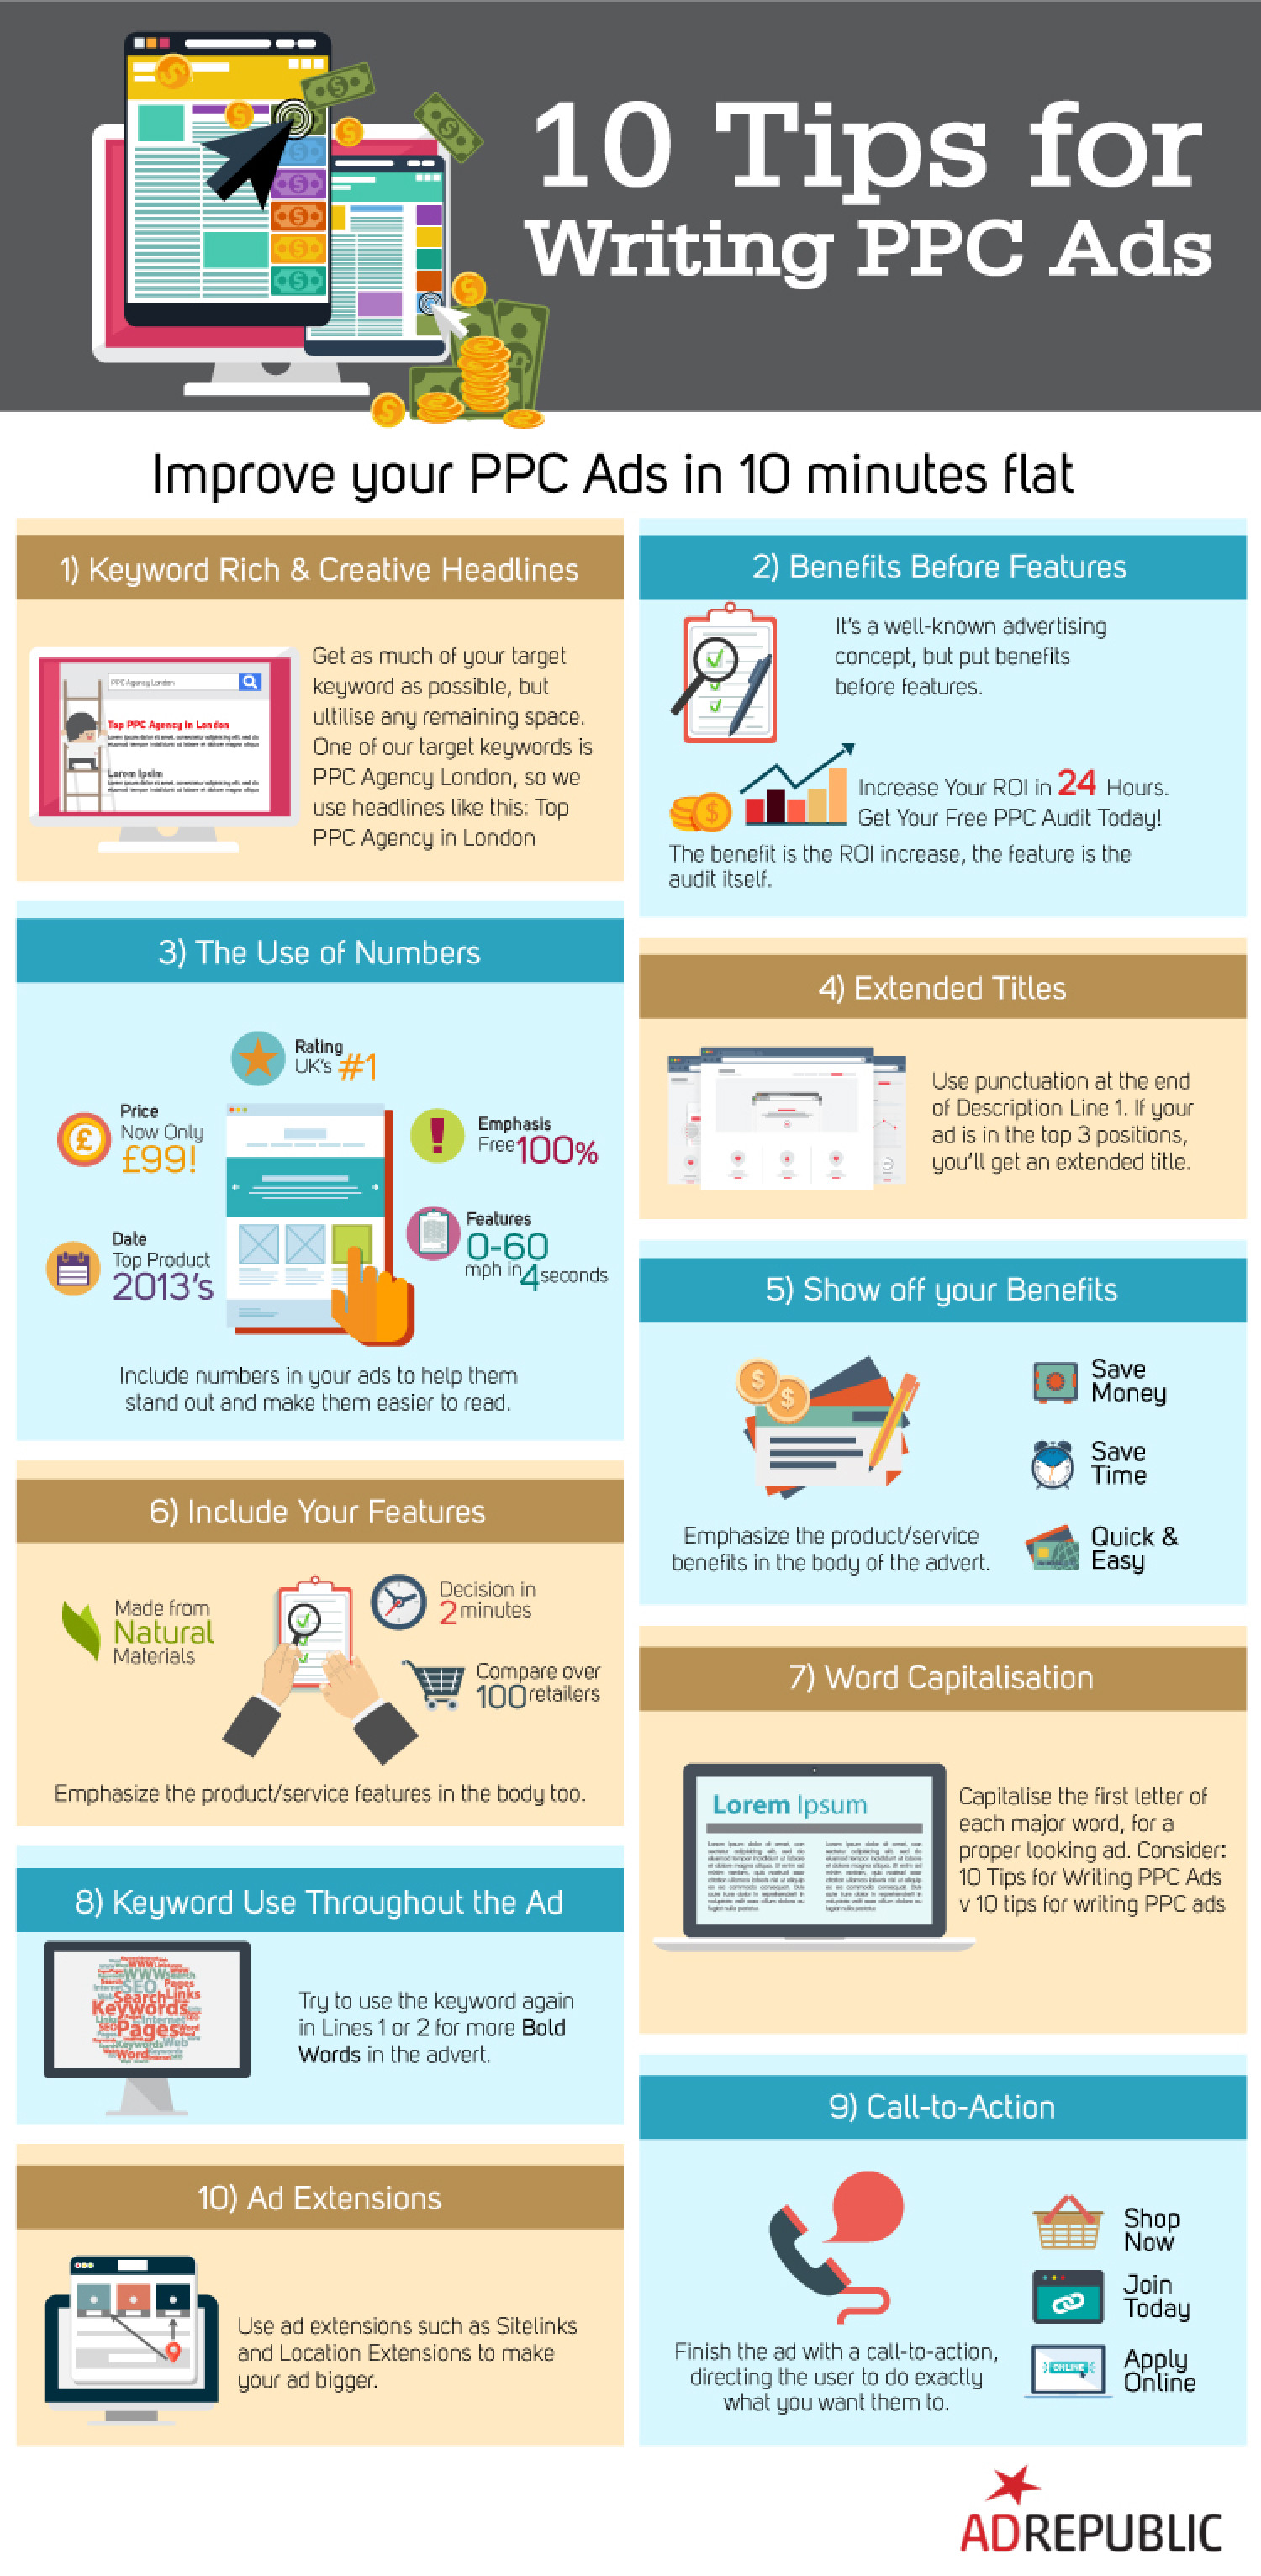 10 Tips for Writing PPC Ads Infographic